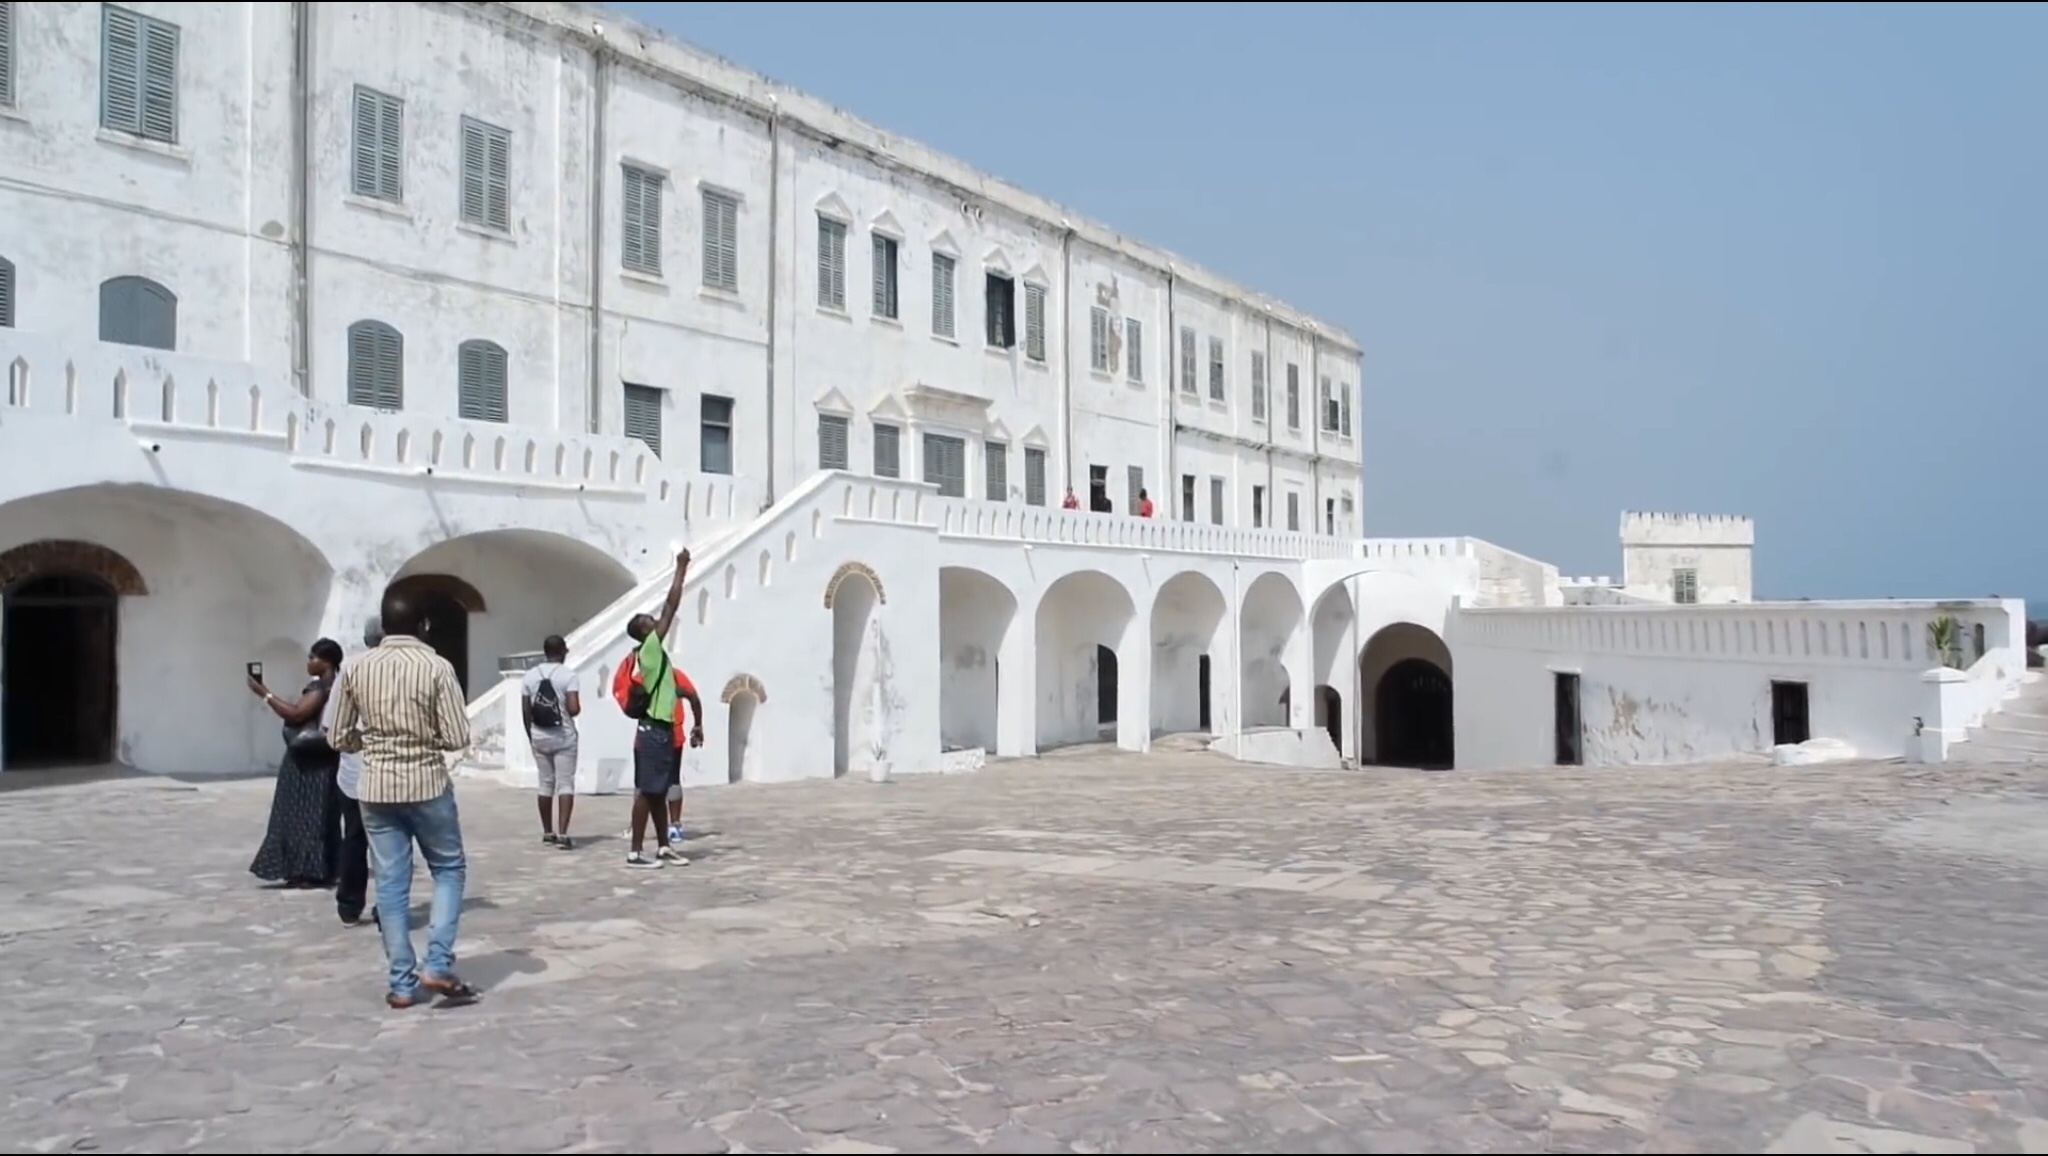 The Cape Coast Castle and its role in the Atlantic slave trade